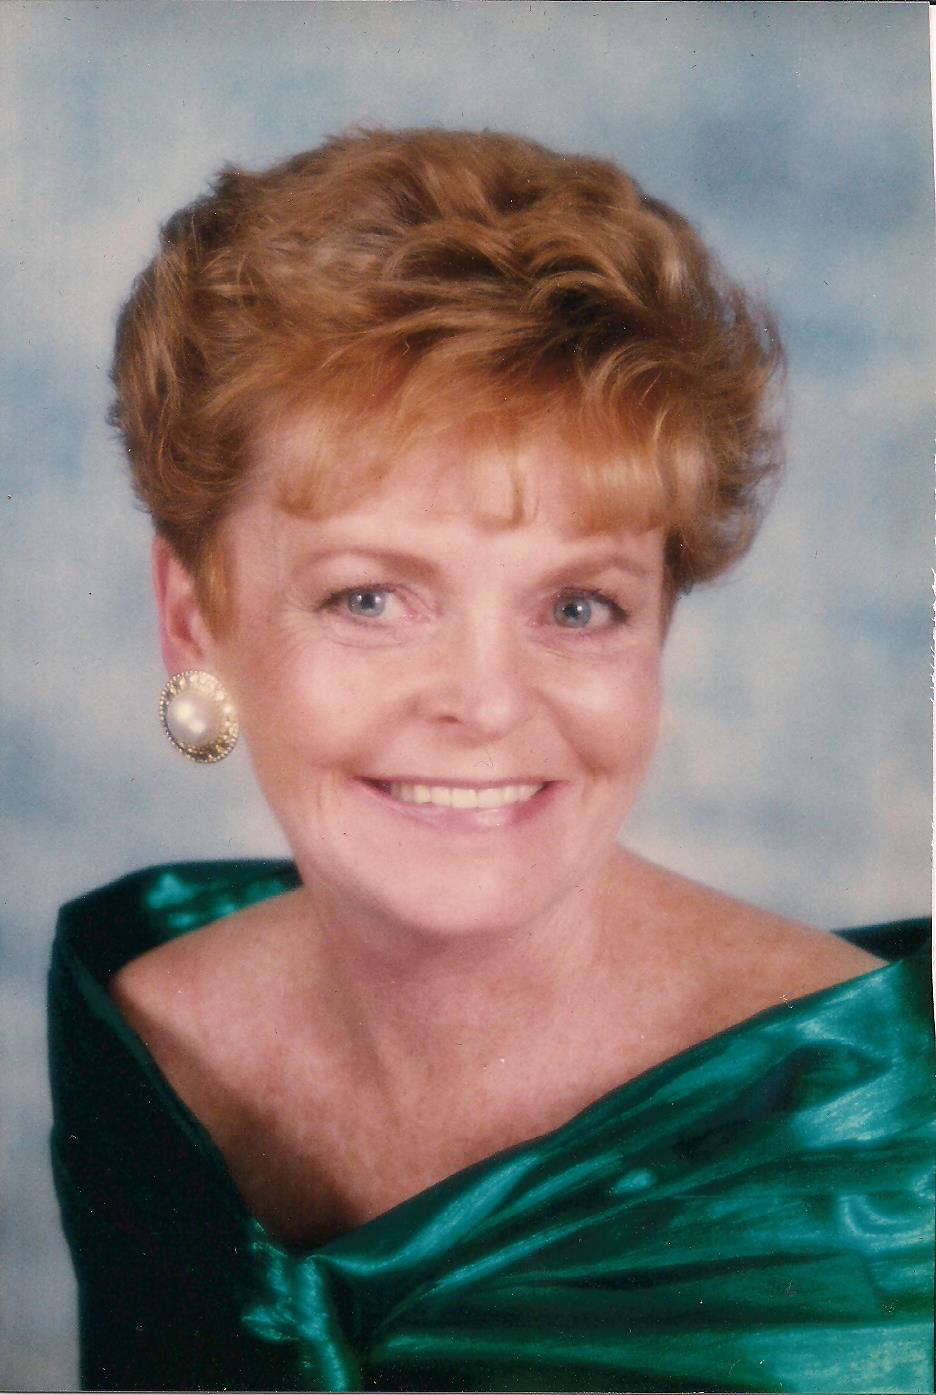 http://www.croswellfuneralhome.com/Pictures/Beverly Viveiros.jpeg